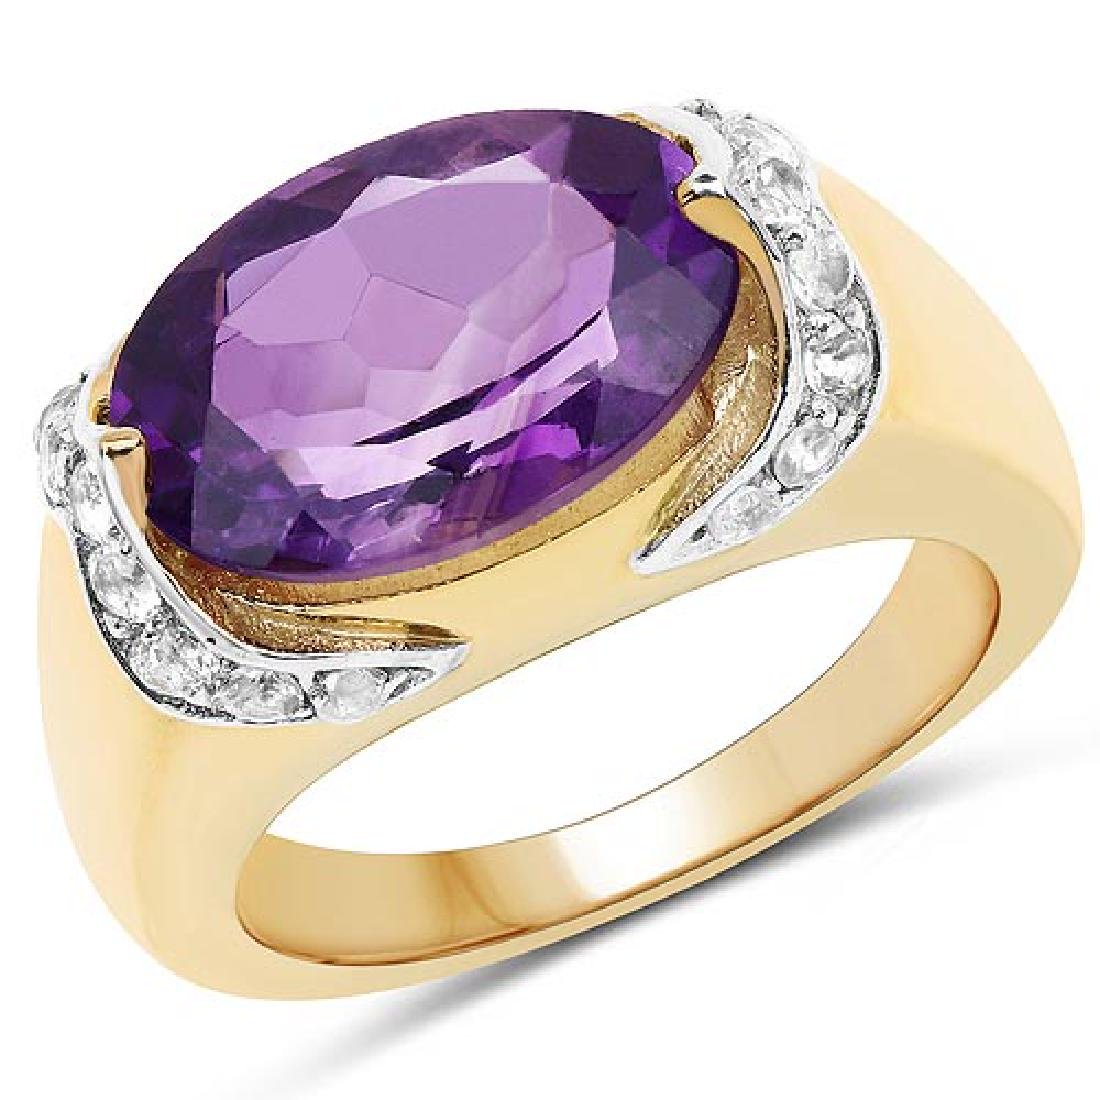 14K Yellow Gold Plated 4.98 Carat Genuine Amethyst and